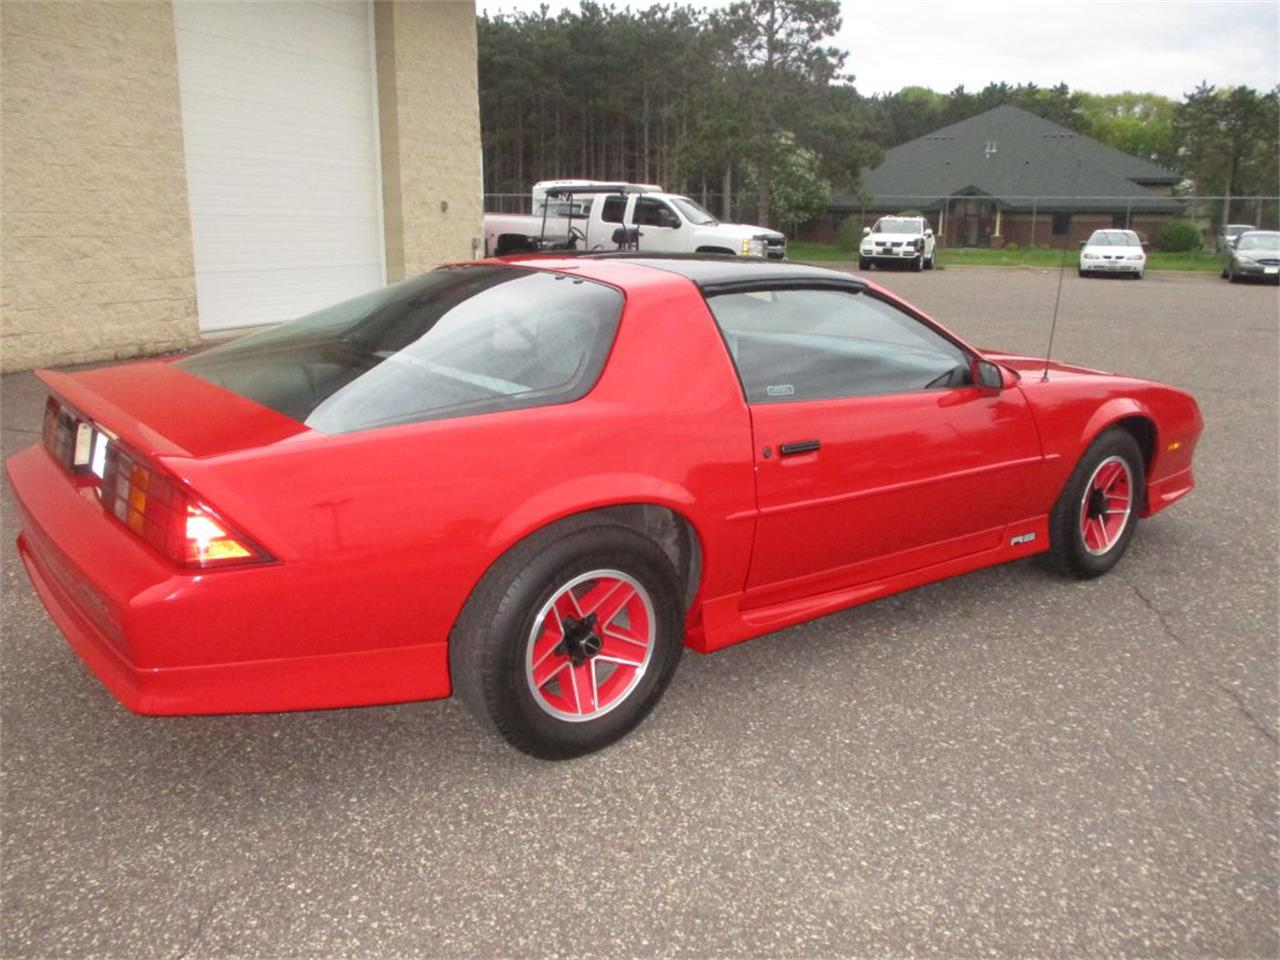 Large Picture of 1991 Camaro located in Minnesota - $15,900.00 - Q61Z